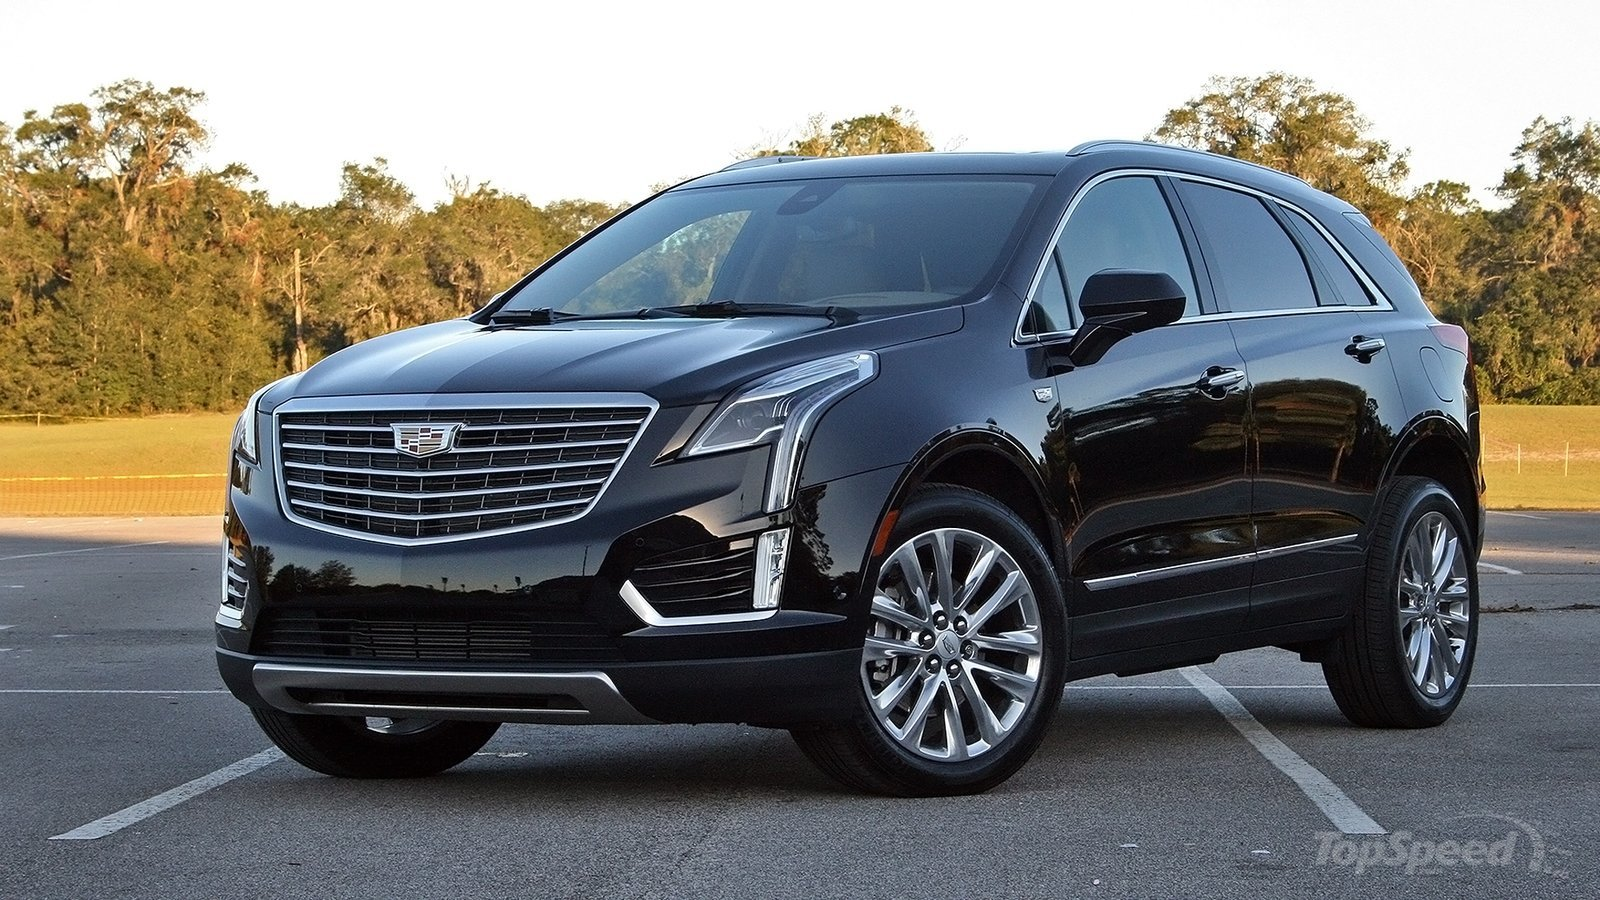 2017 cadillac xt5 driven review top speed. Black Bedroom Furniture Sets. Home Design Ideas